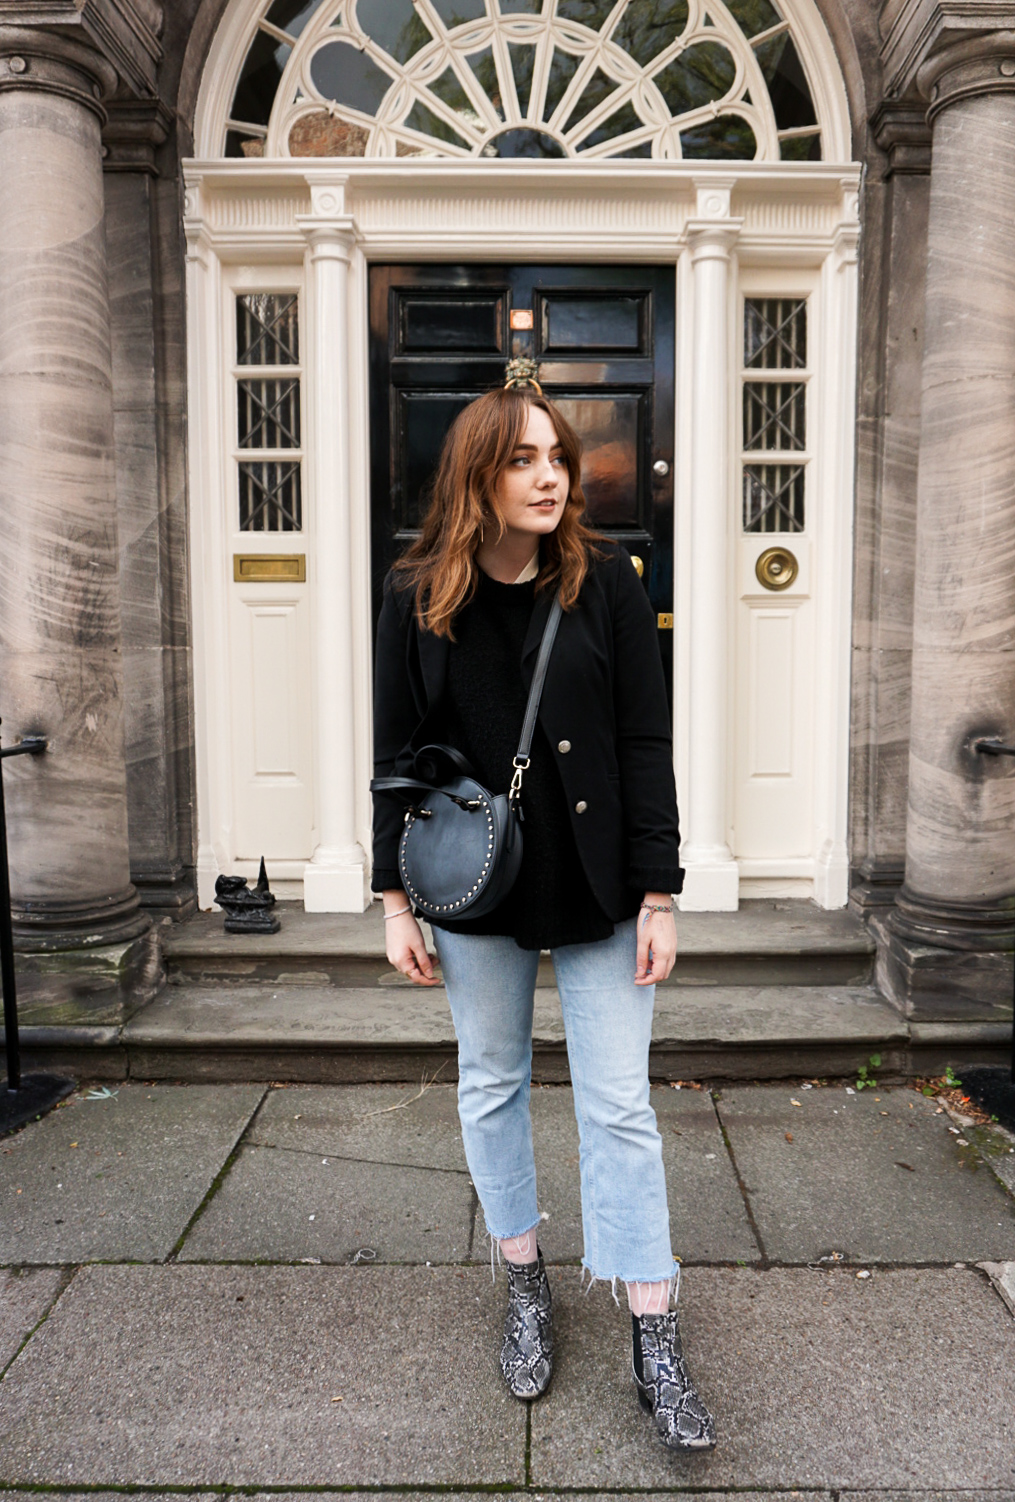 autumn 2018 outfit featuring black blazer, jumper and cross body bag, with light blue cropped jeans and snake print ankle boots